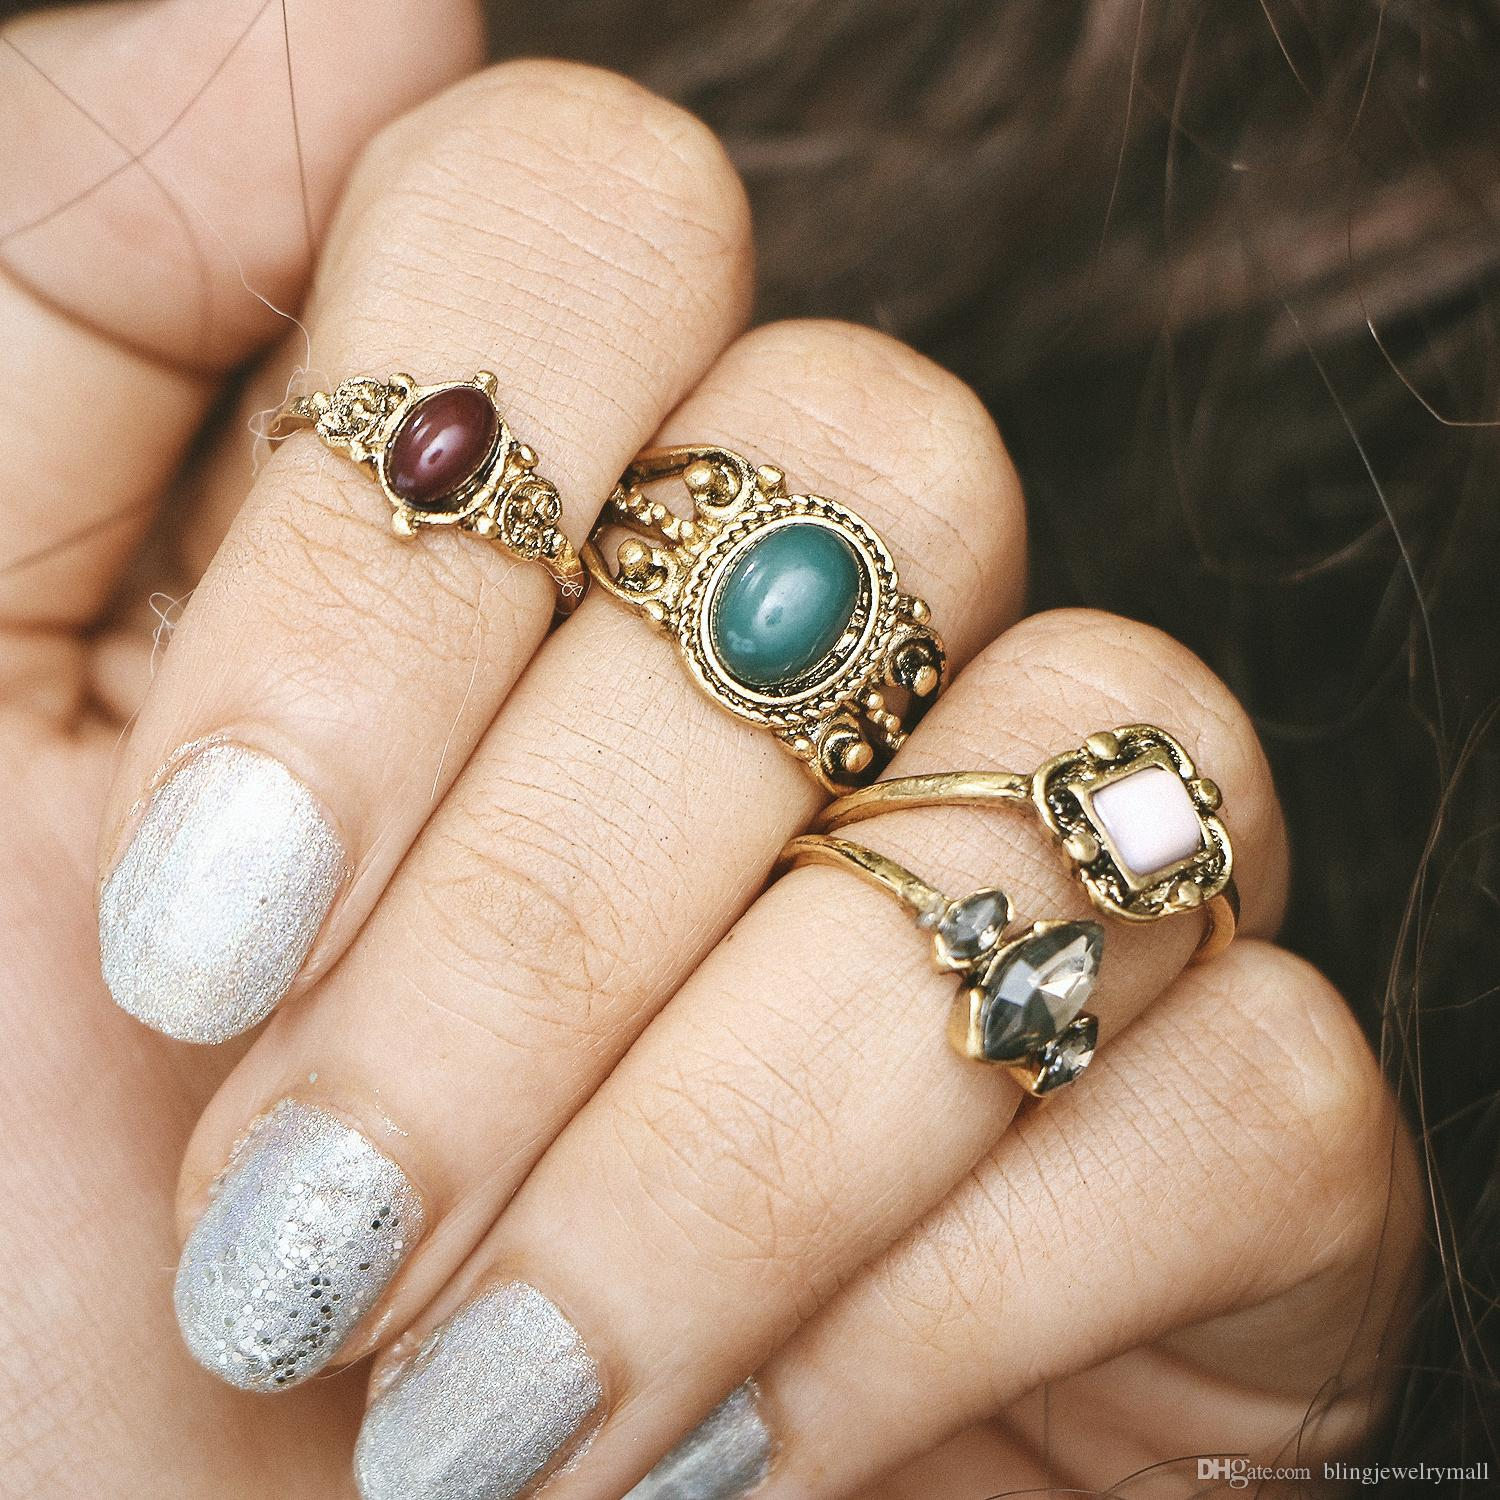 4pcs Natural Stone Silver Plated Rings Fashion Wholesale Jewelry